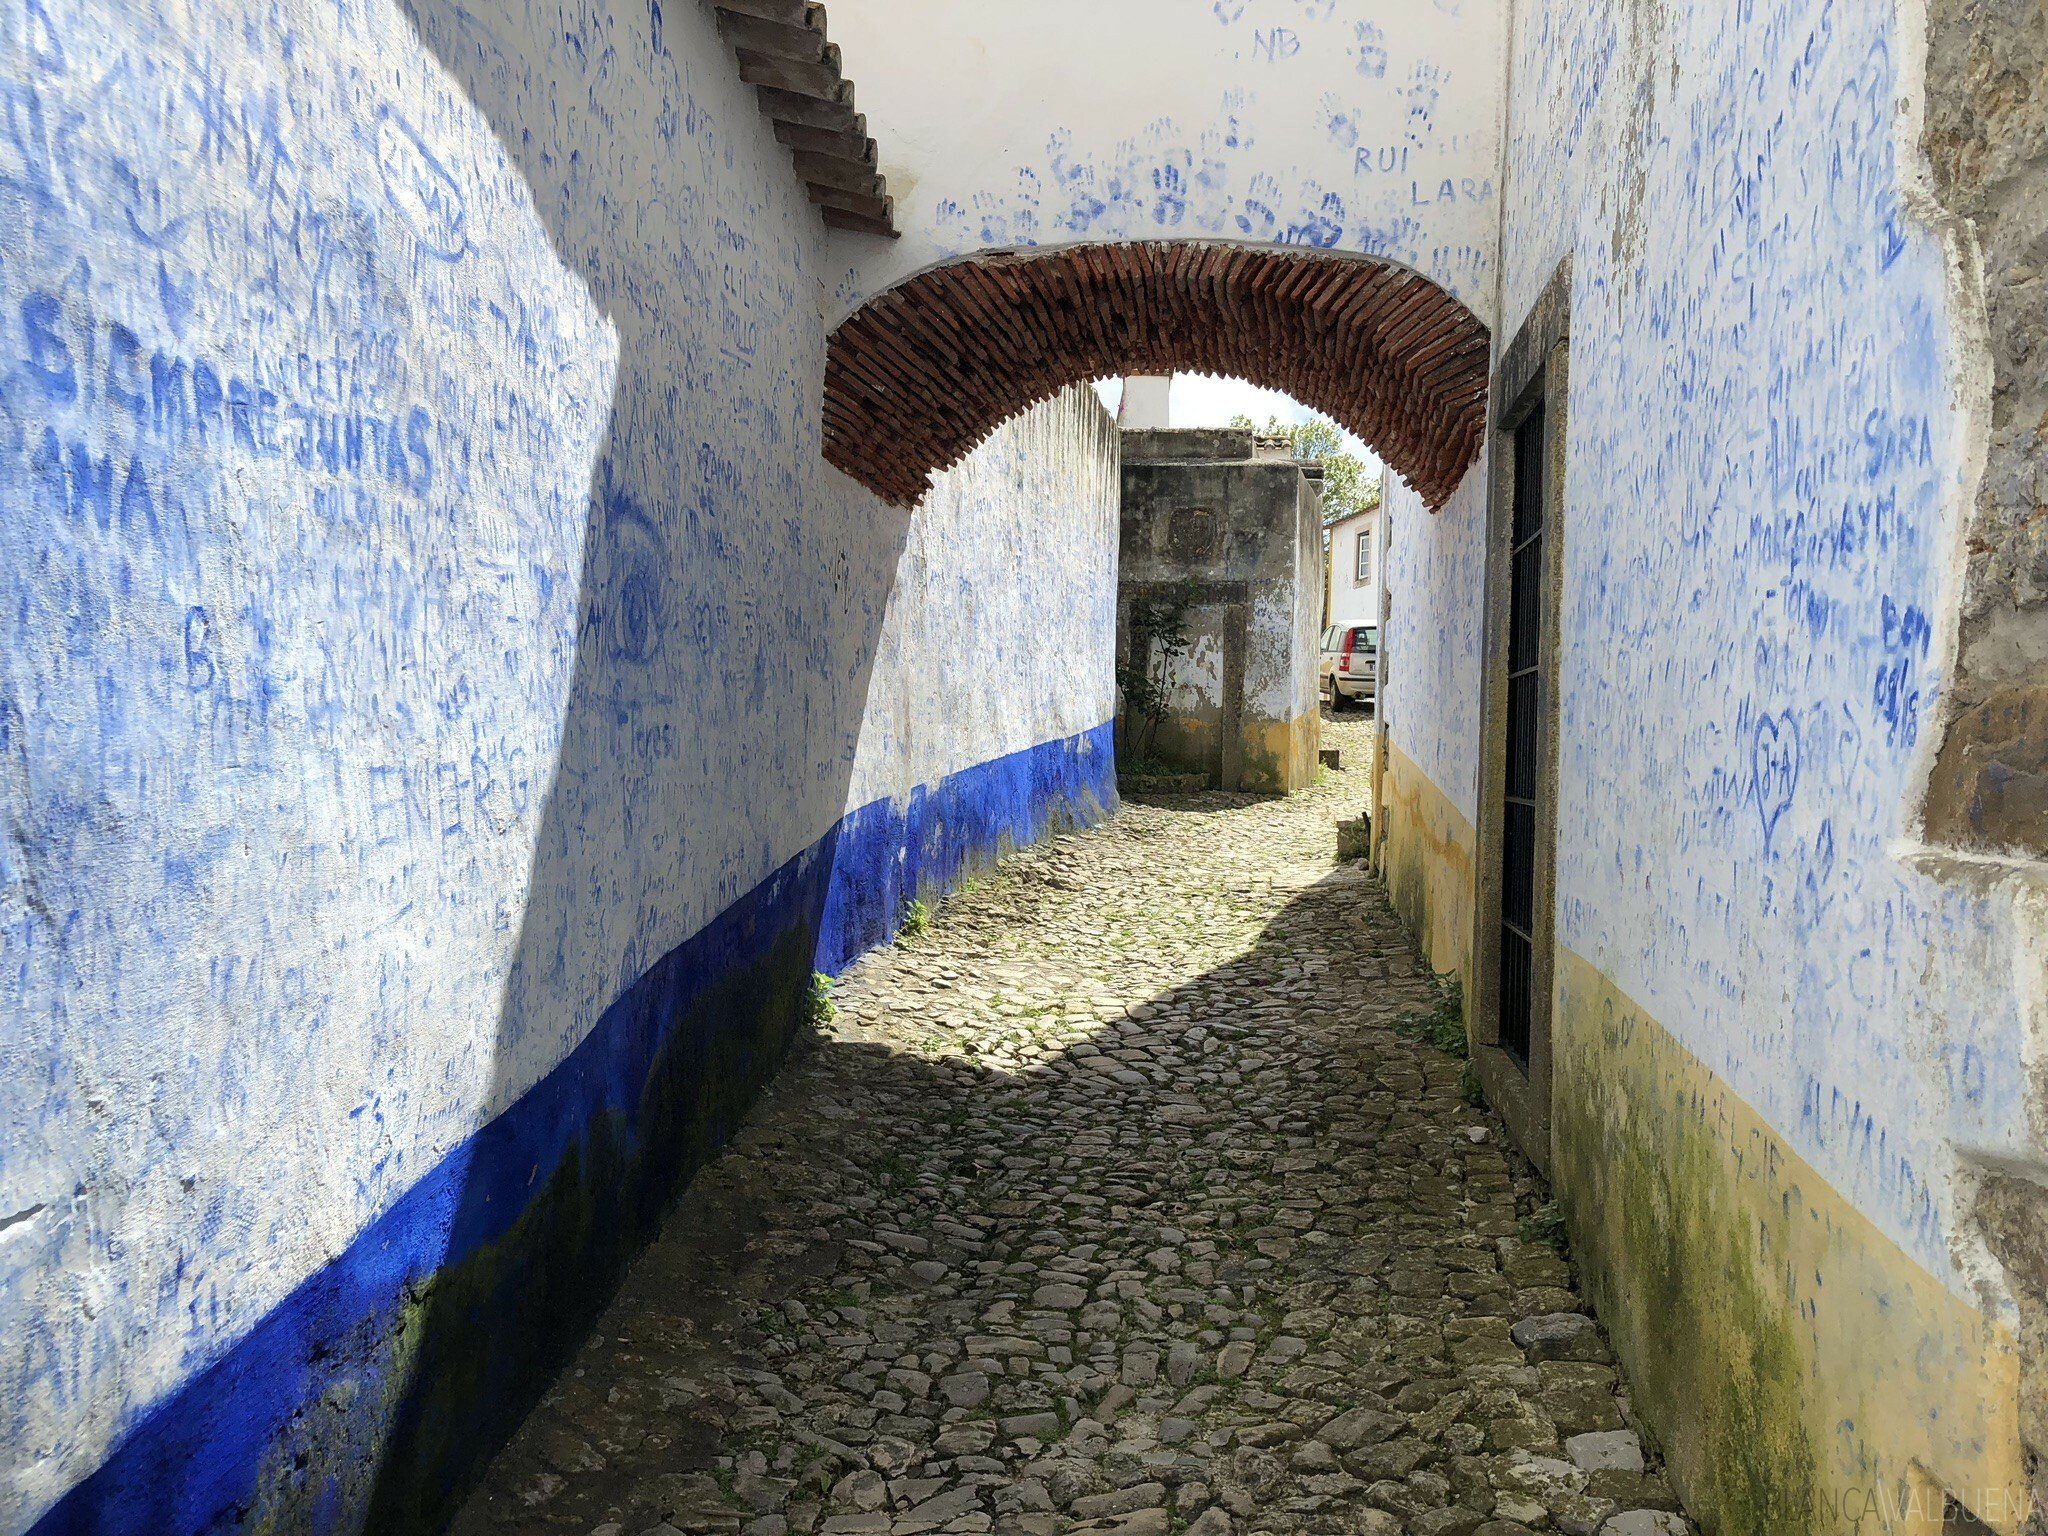 alley covered in blue graffiti